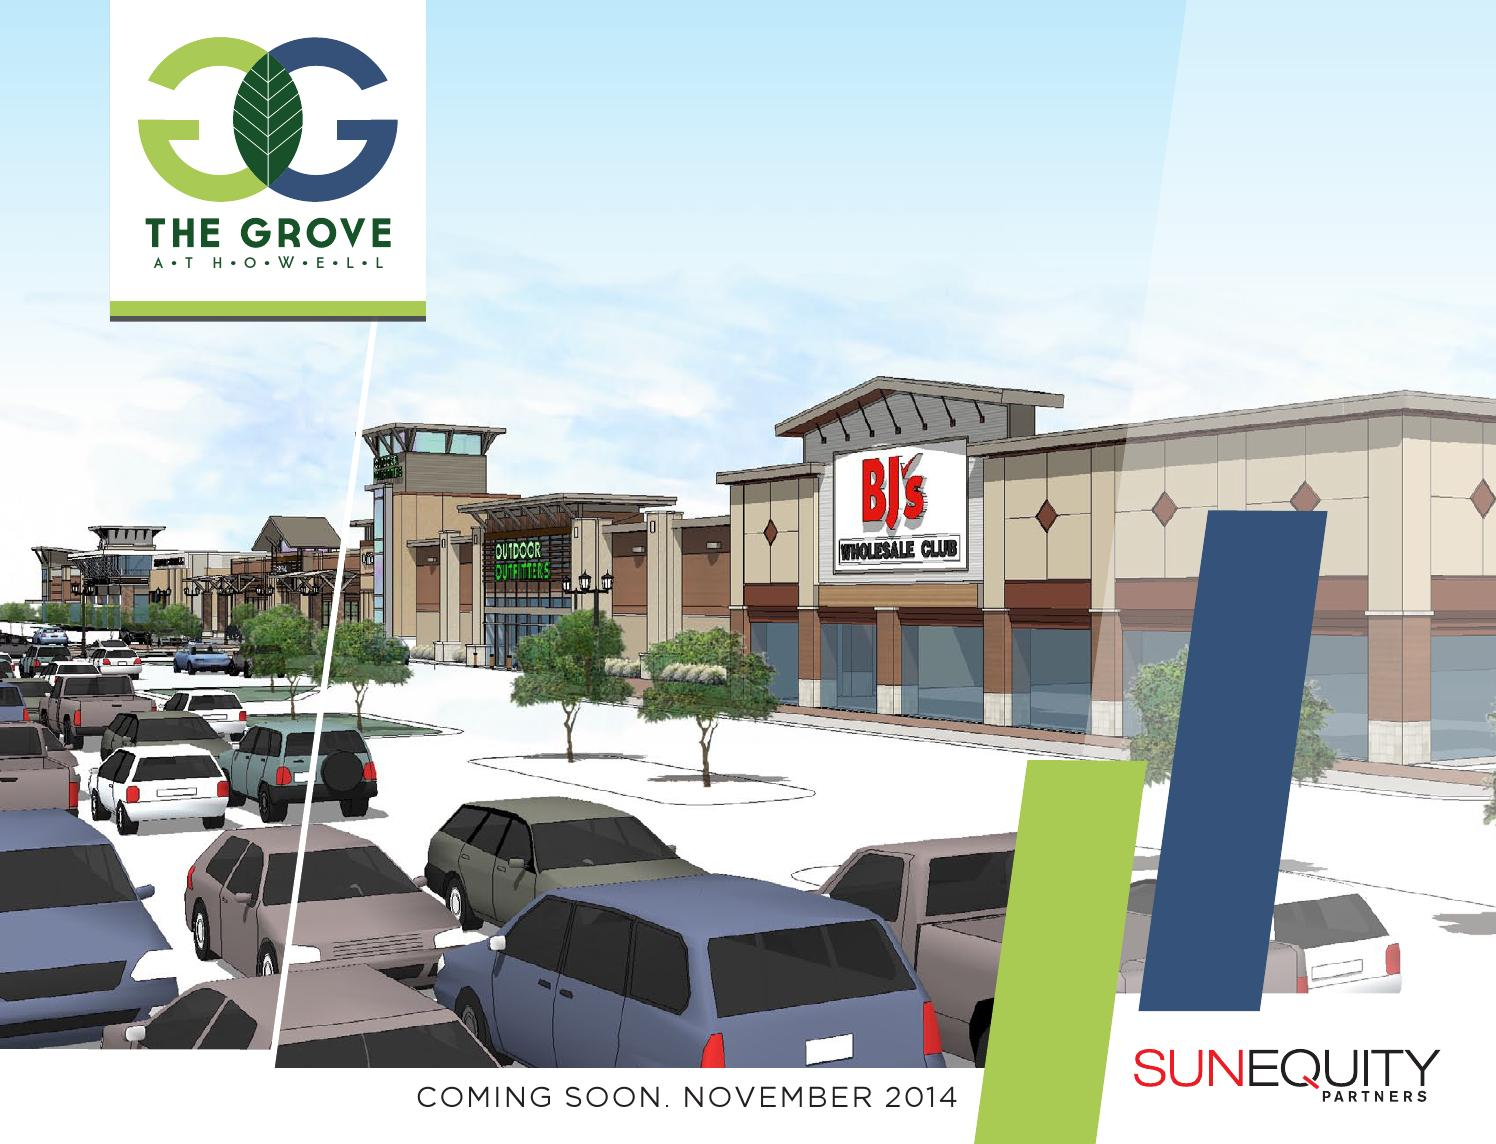 the grove at howell by rb creative marketing group